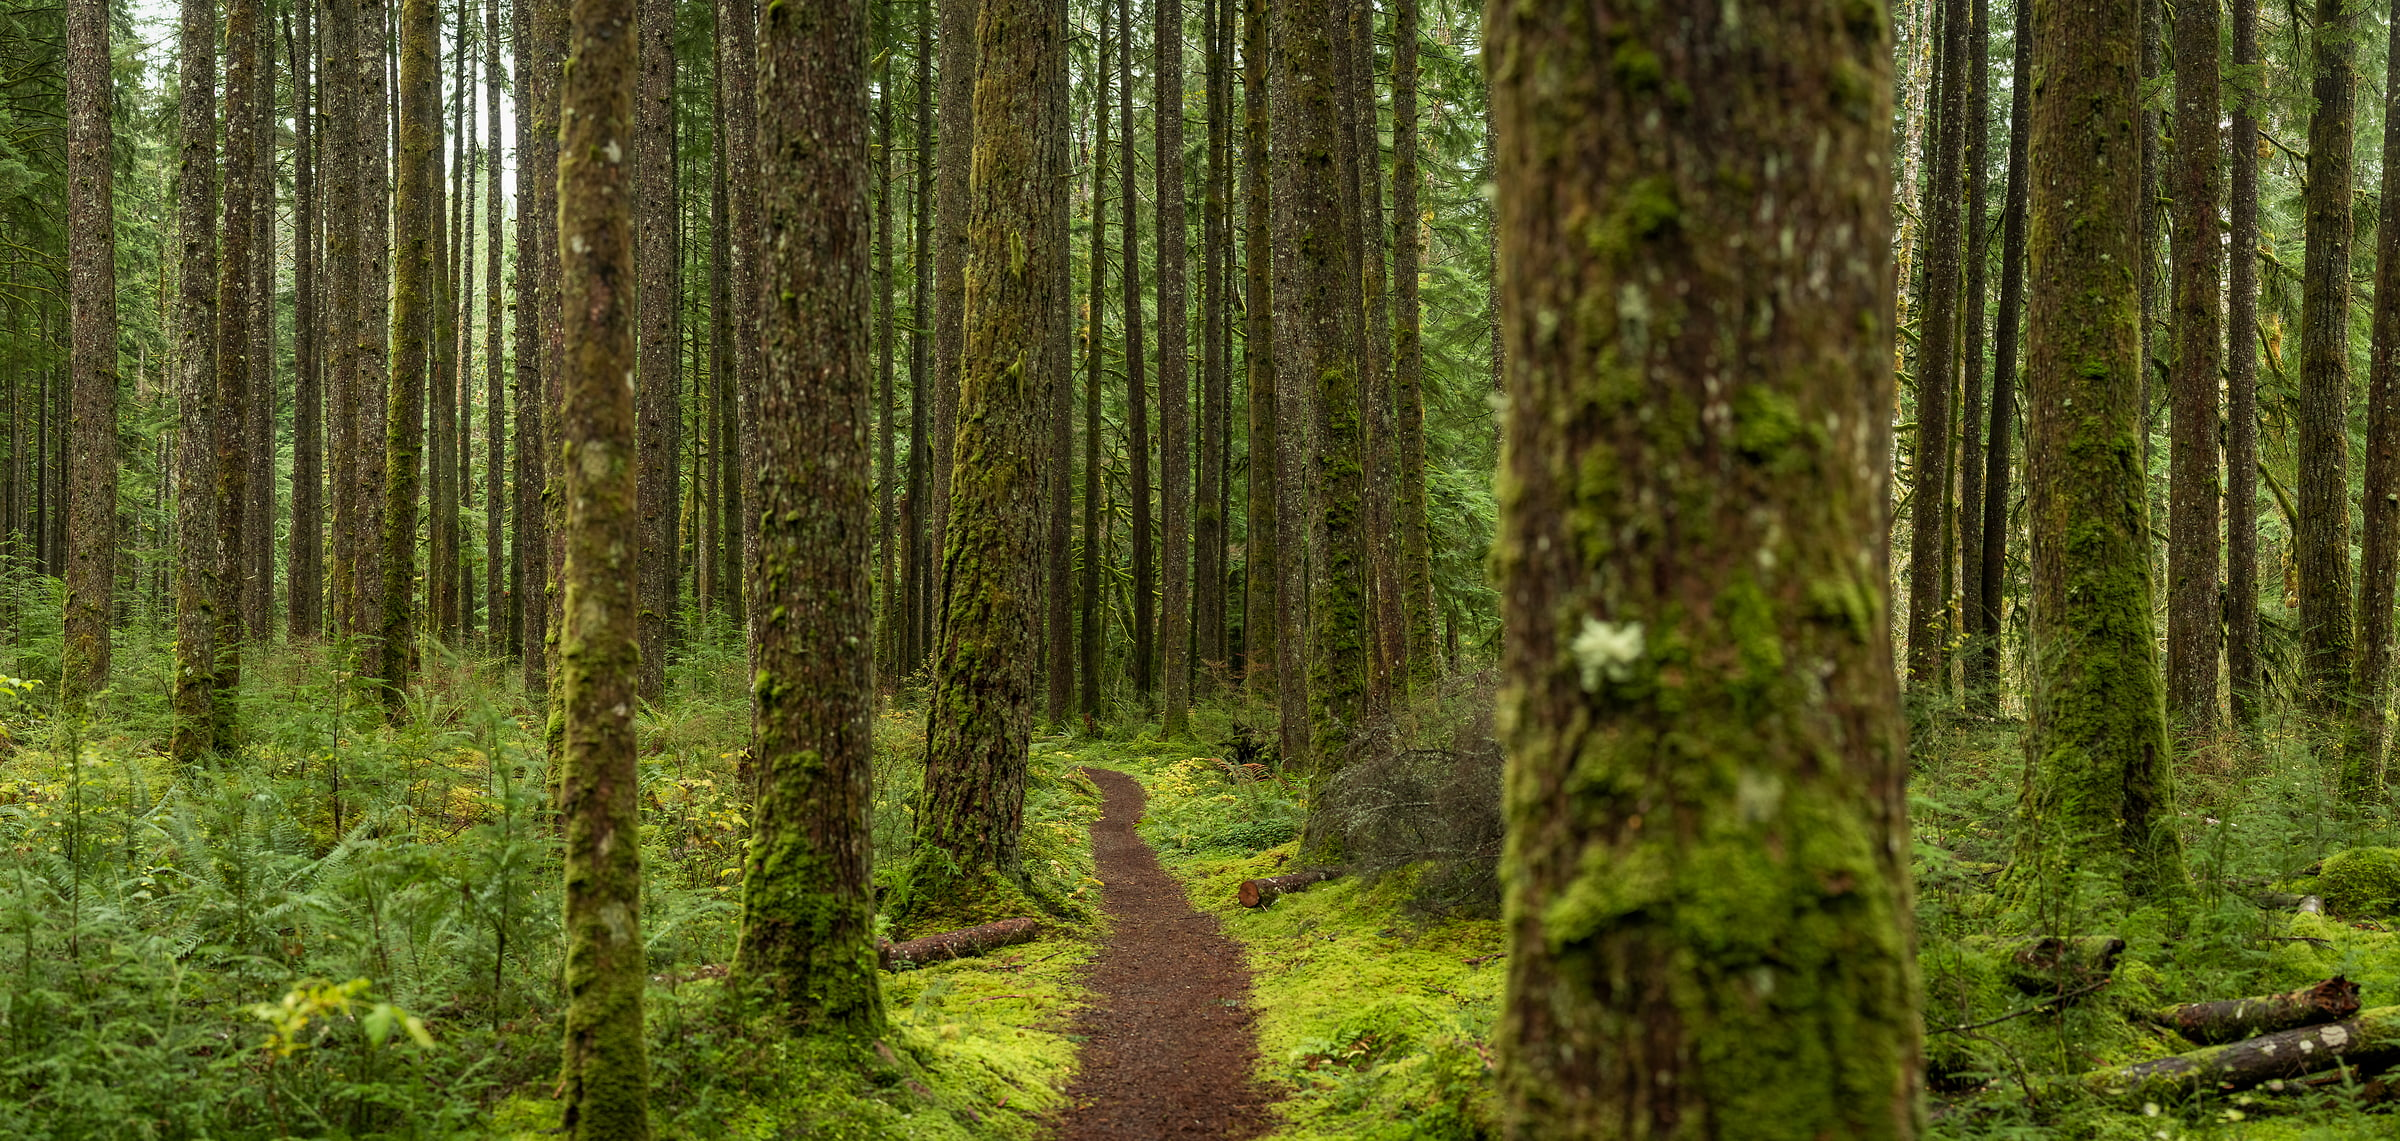 217 megapixels! A very high resolution, large-format VAST photo print of a pathway in a forest; nature photograph created by Scott Rinckenberger in CCC Trail, Middle Fork Trailhead, Middle Fork Snoqualmie River, Washington